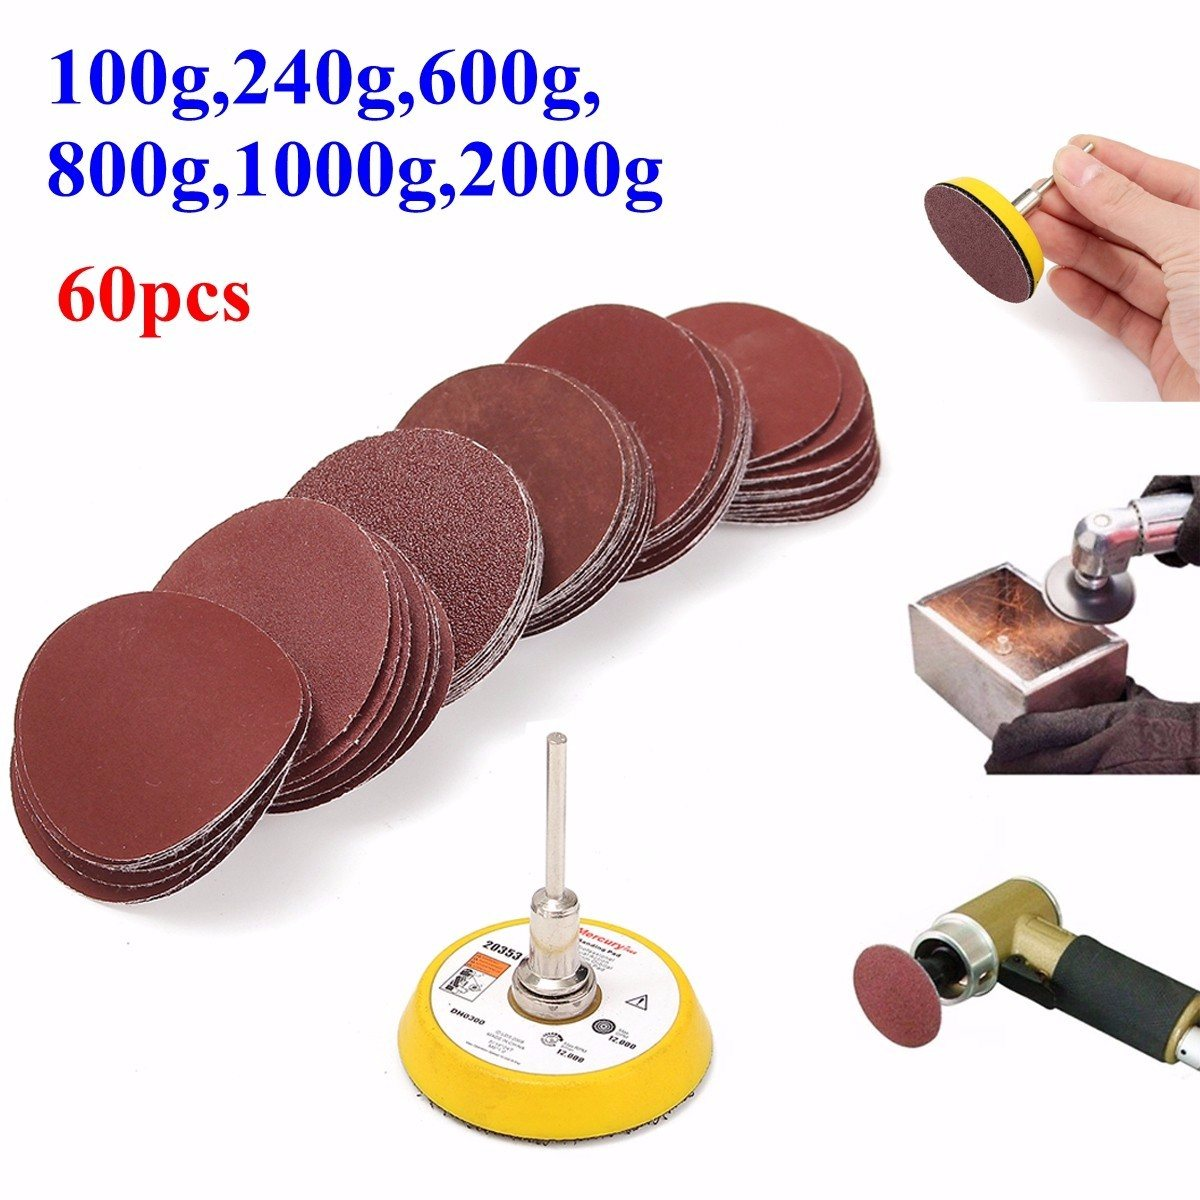 DANIU New 2 Inch 50mm Hook And Loop Sanding Pad 3mm Shank With 60pcs 100 To 2000 Grit Sand Paper Kit Durable